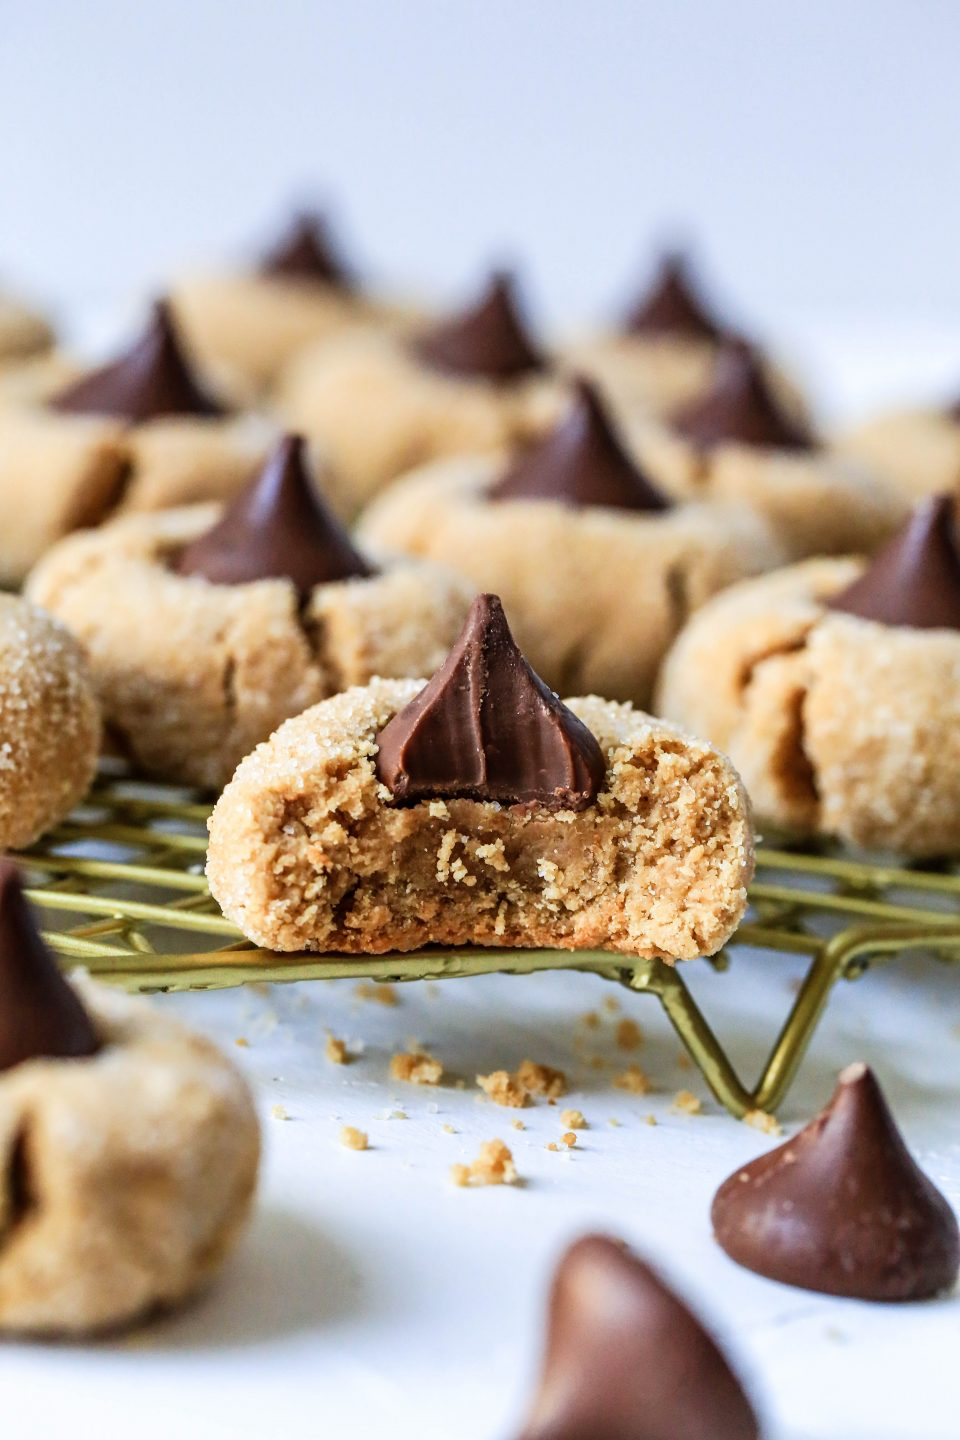 An up close shot of a peanut butter blossom cookie with a bite out of it. There are some unwrapped Hershey's Kisses in the foreground.